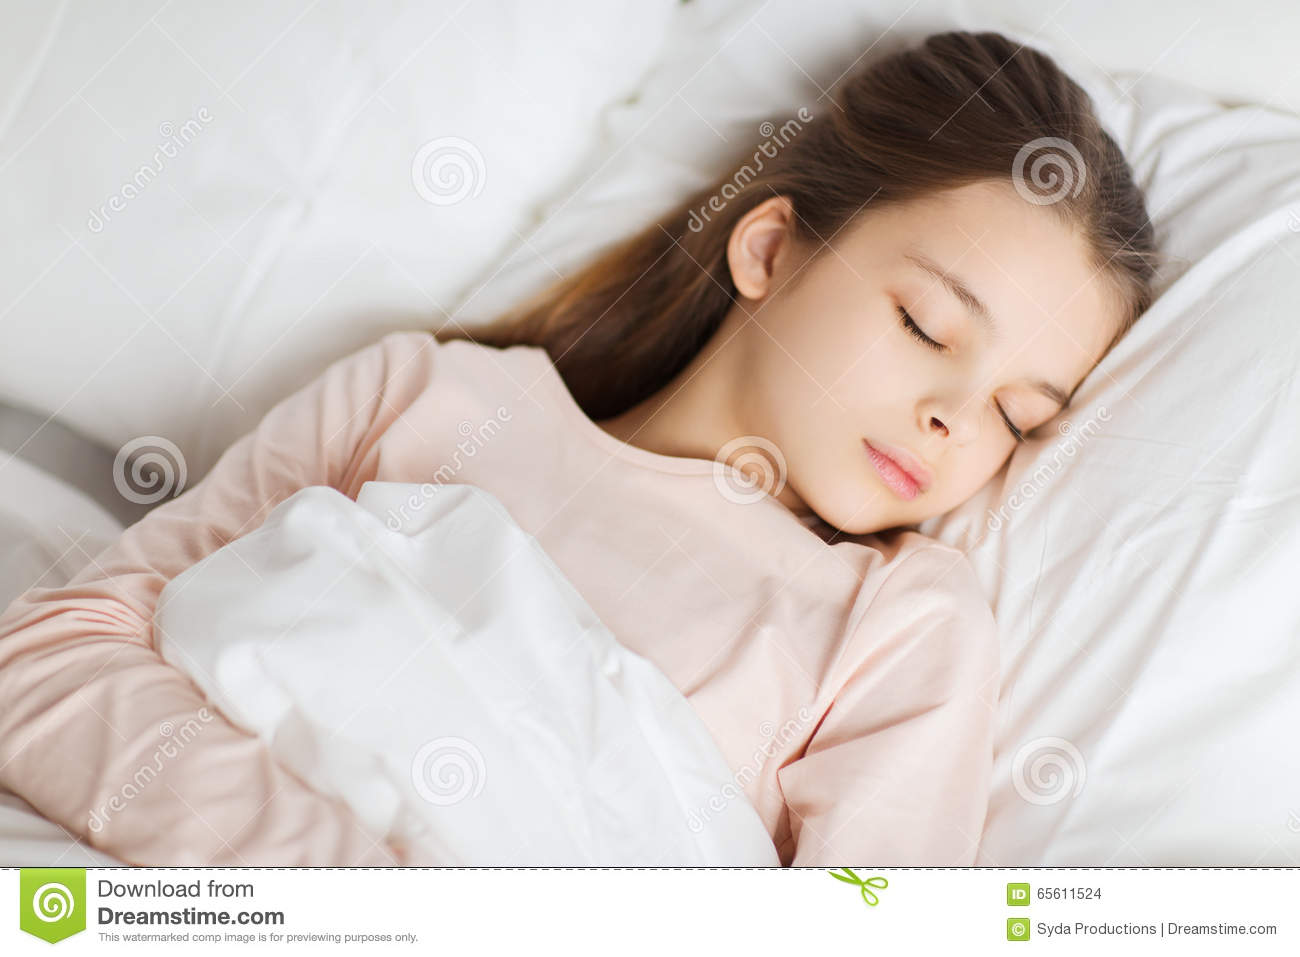 Woman Sleeping Stock Images, Royalty-Free Images &